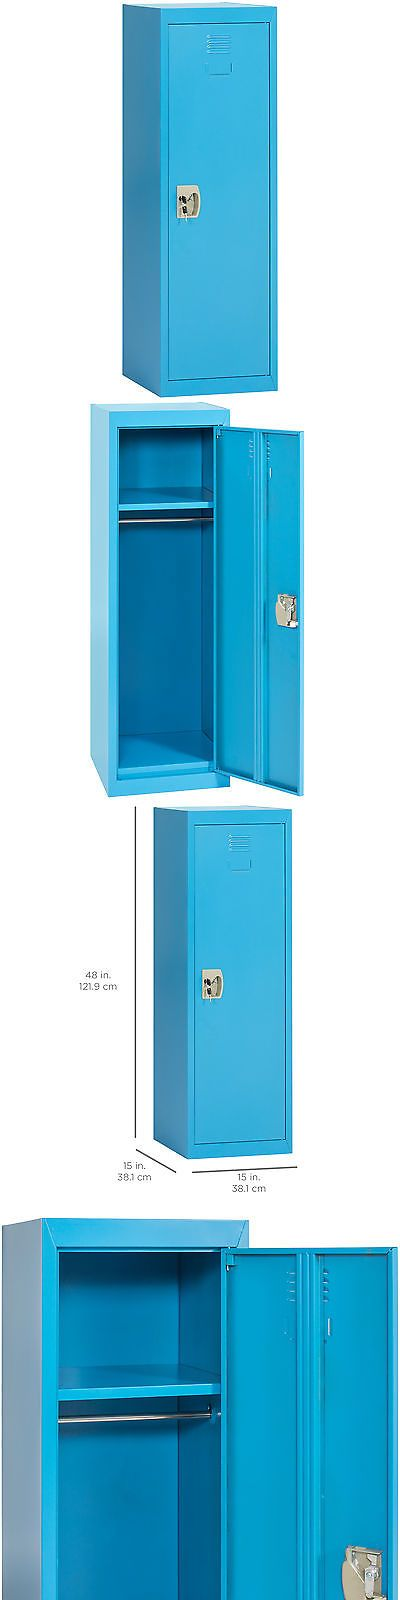 Storage Units 134651: Best Choice Products 48-Inch Kids Storage Locker Home And School -> BUY IT NOW ONLY: $68.69 on eBay!